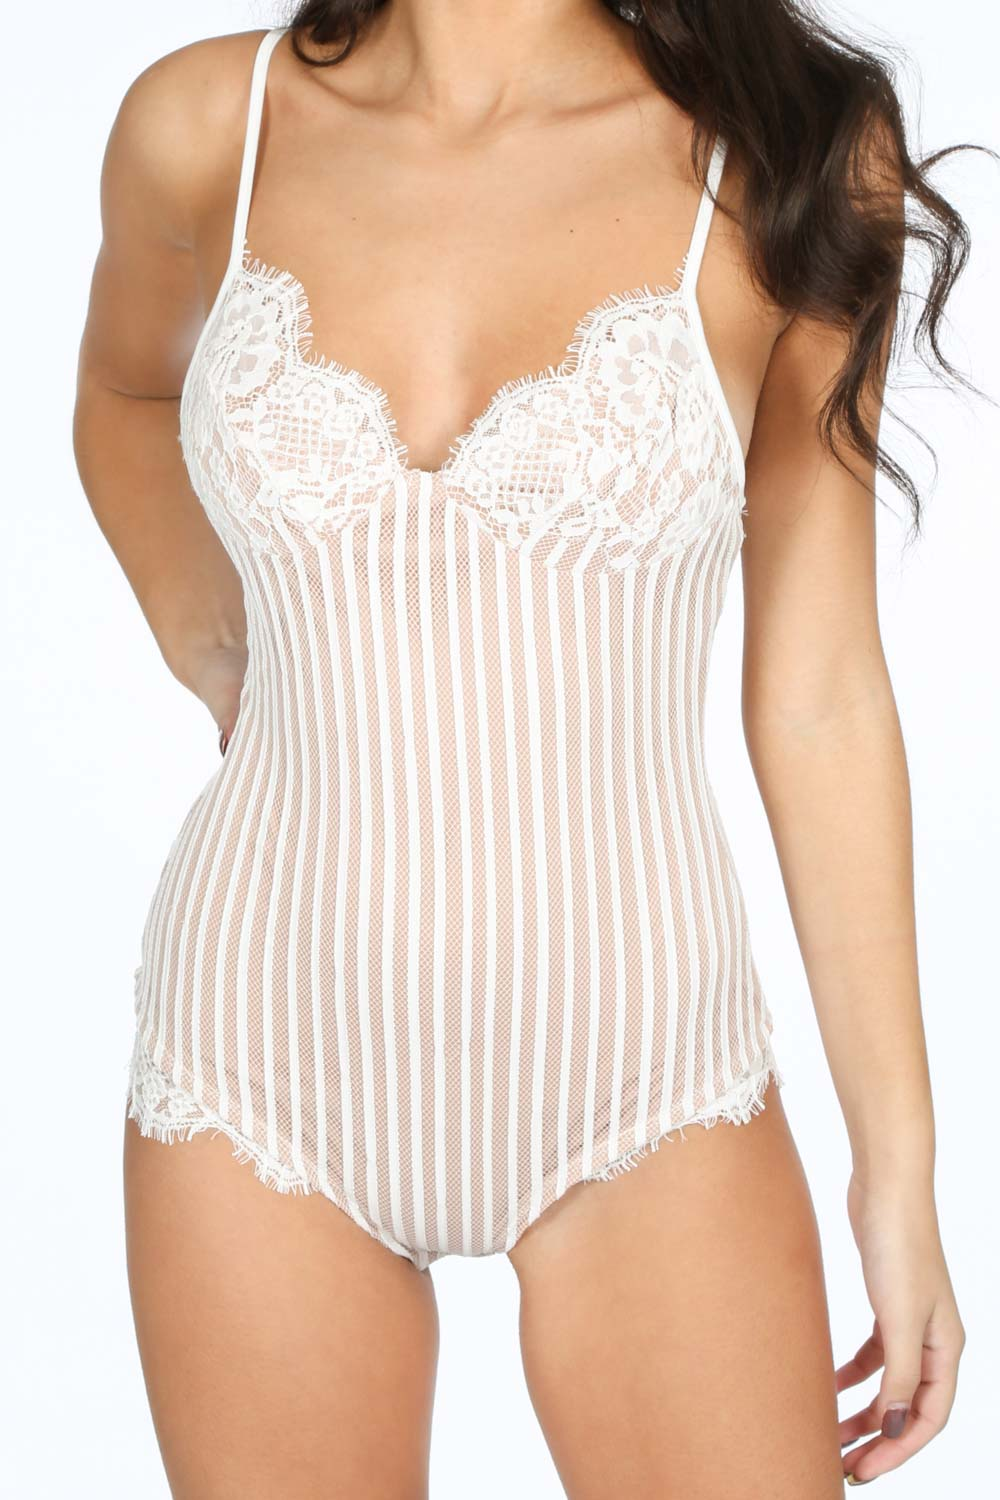 Boudoir Lace Bodysuit In White